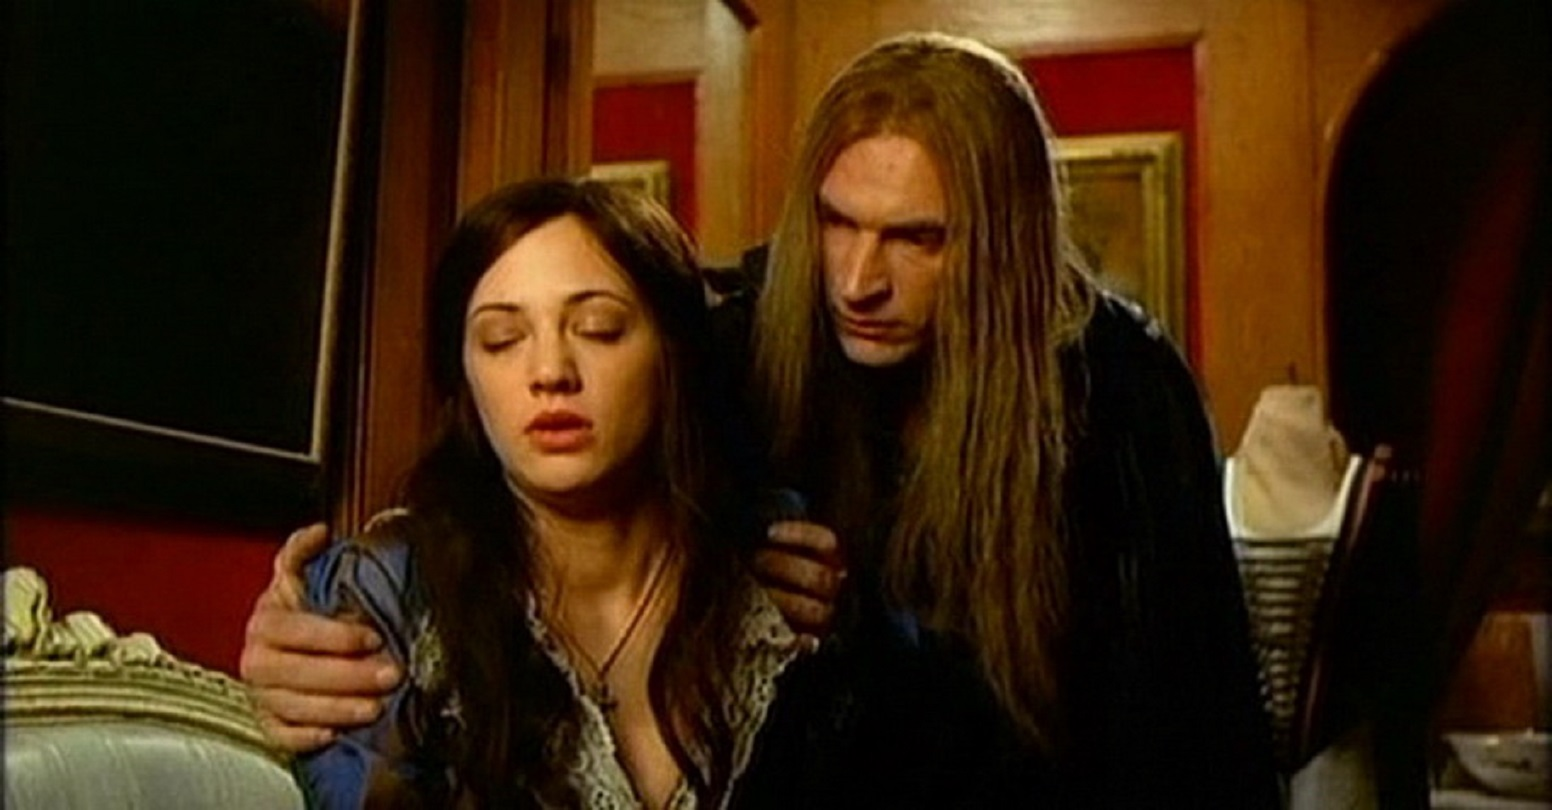 Asia Argento with Julian Sands as The Phantom in The Phantom of the Opera (1998)